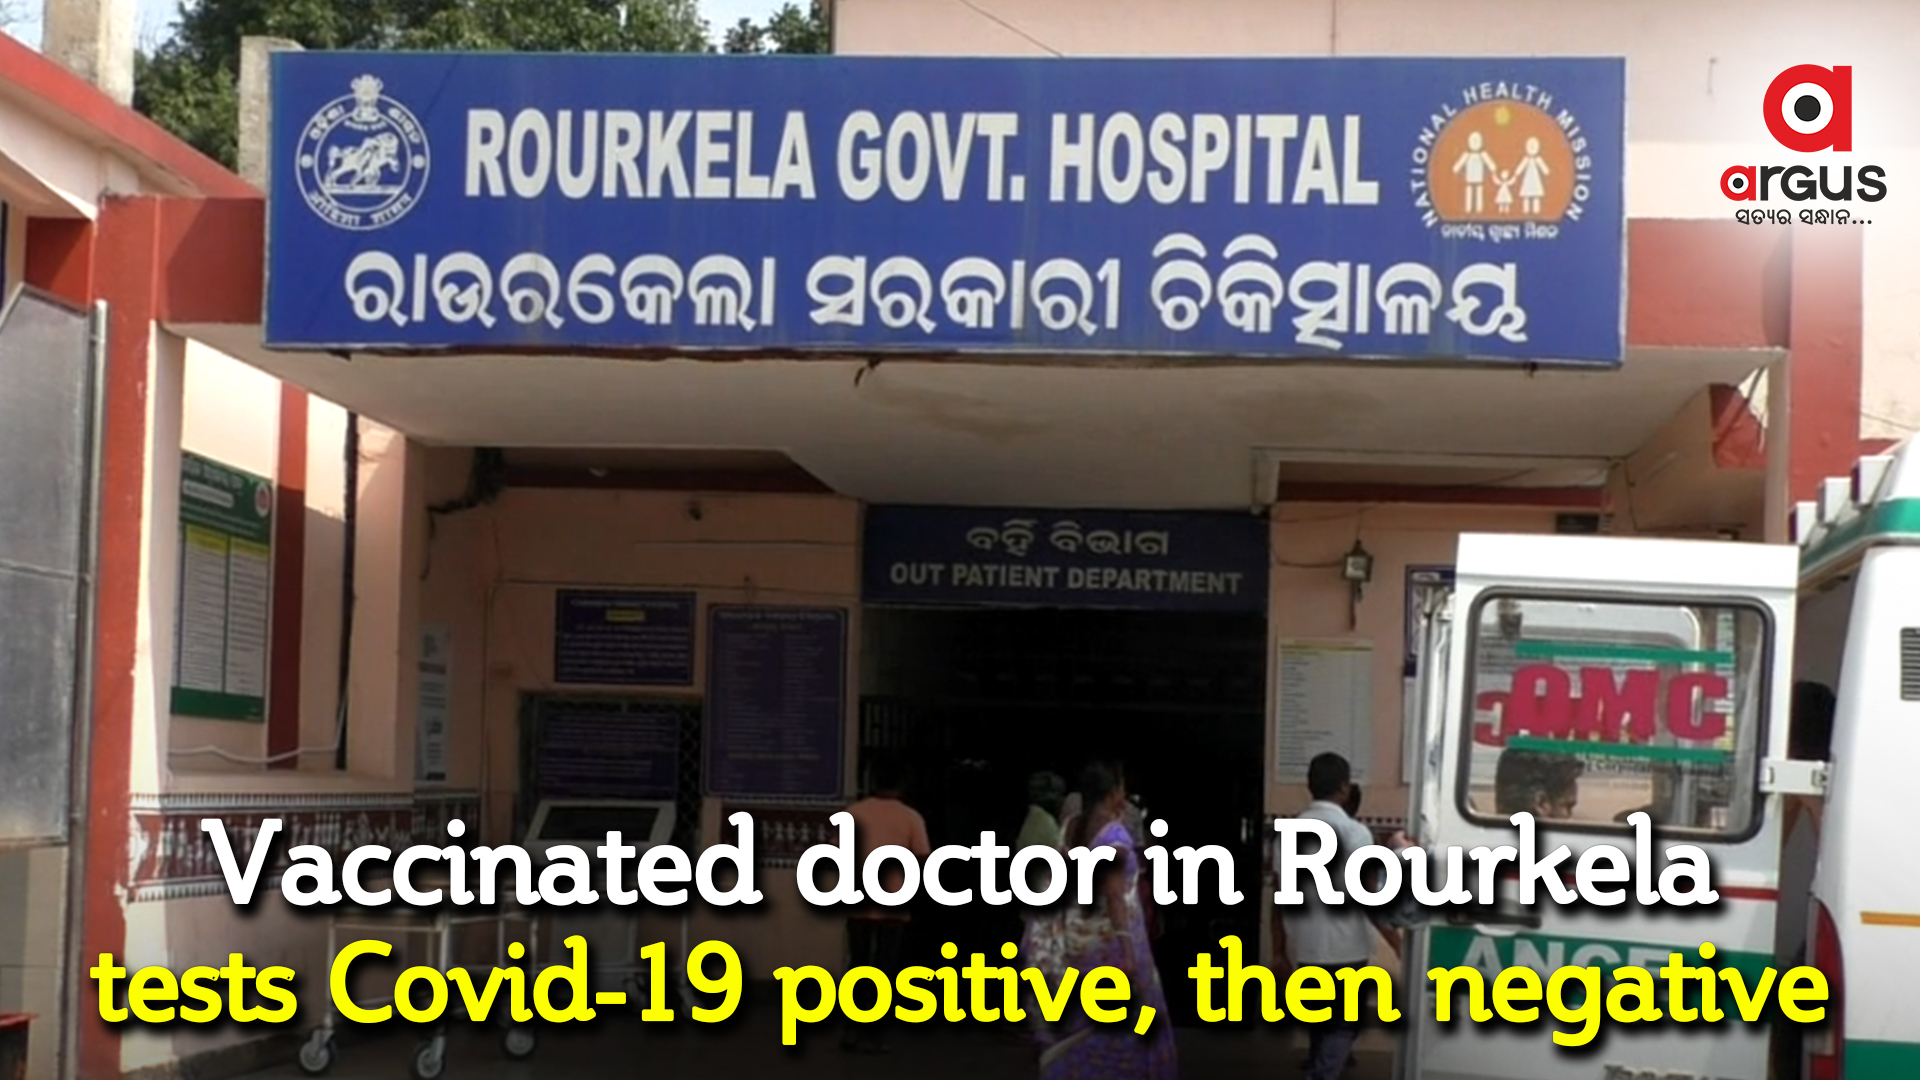 Vaccinated doctor in Rourkela tests Covid-19 positive, then negative